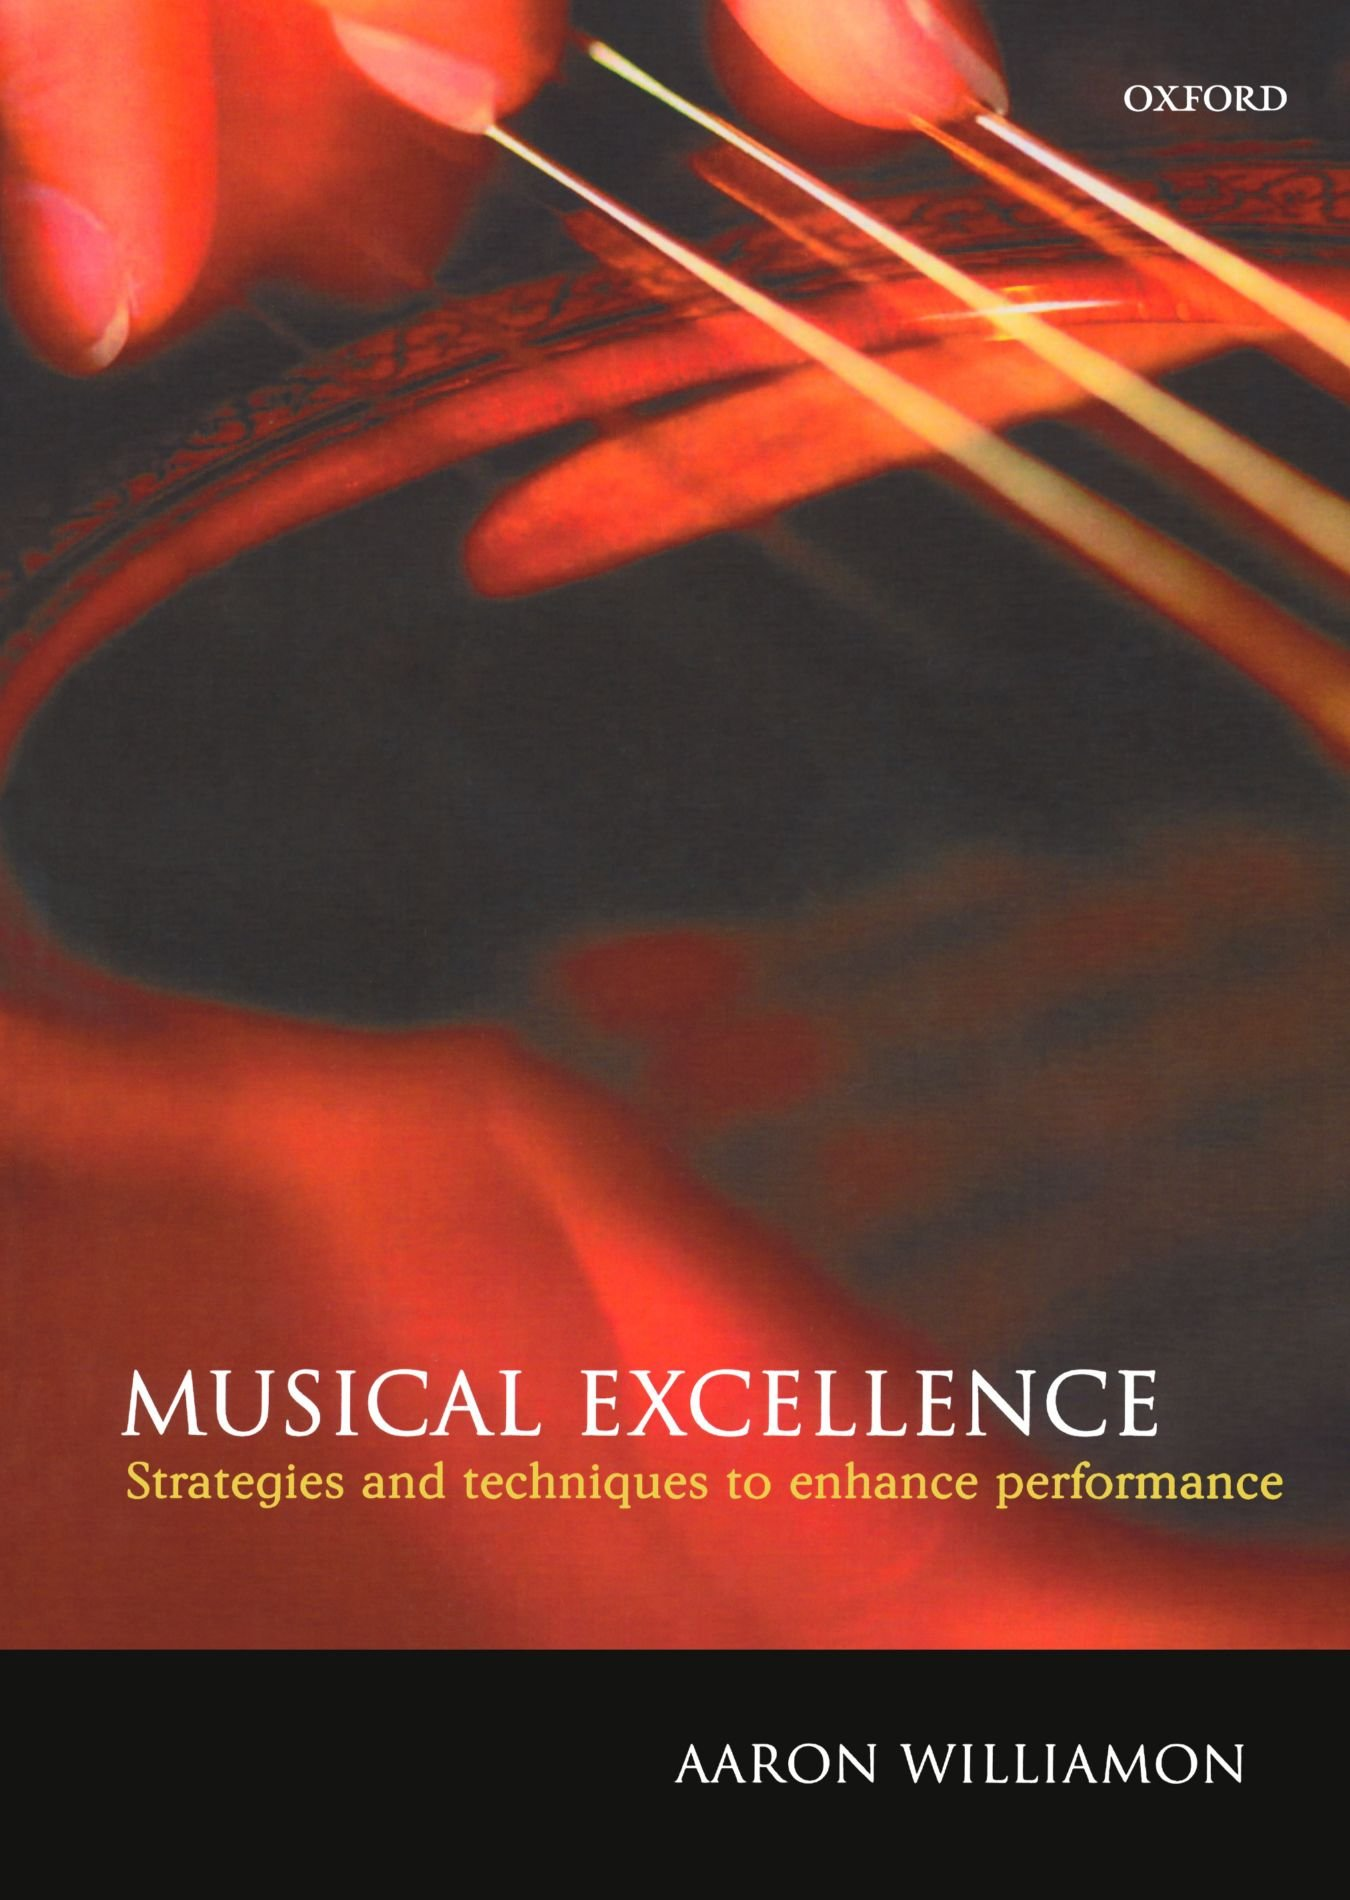 Musical Excellence: Strategies And Techniques To Enhance Performance:  Amazon: Aaron Williamon: 9780198525356: Books